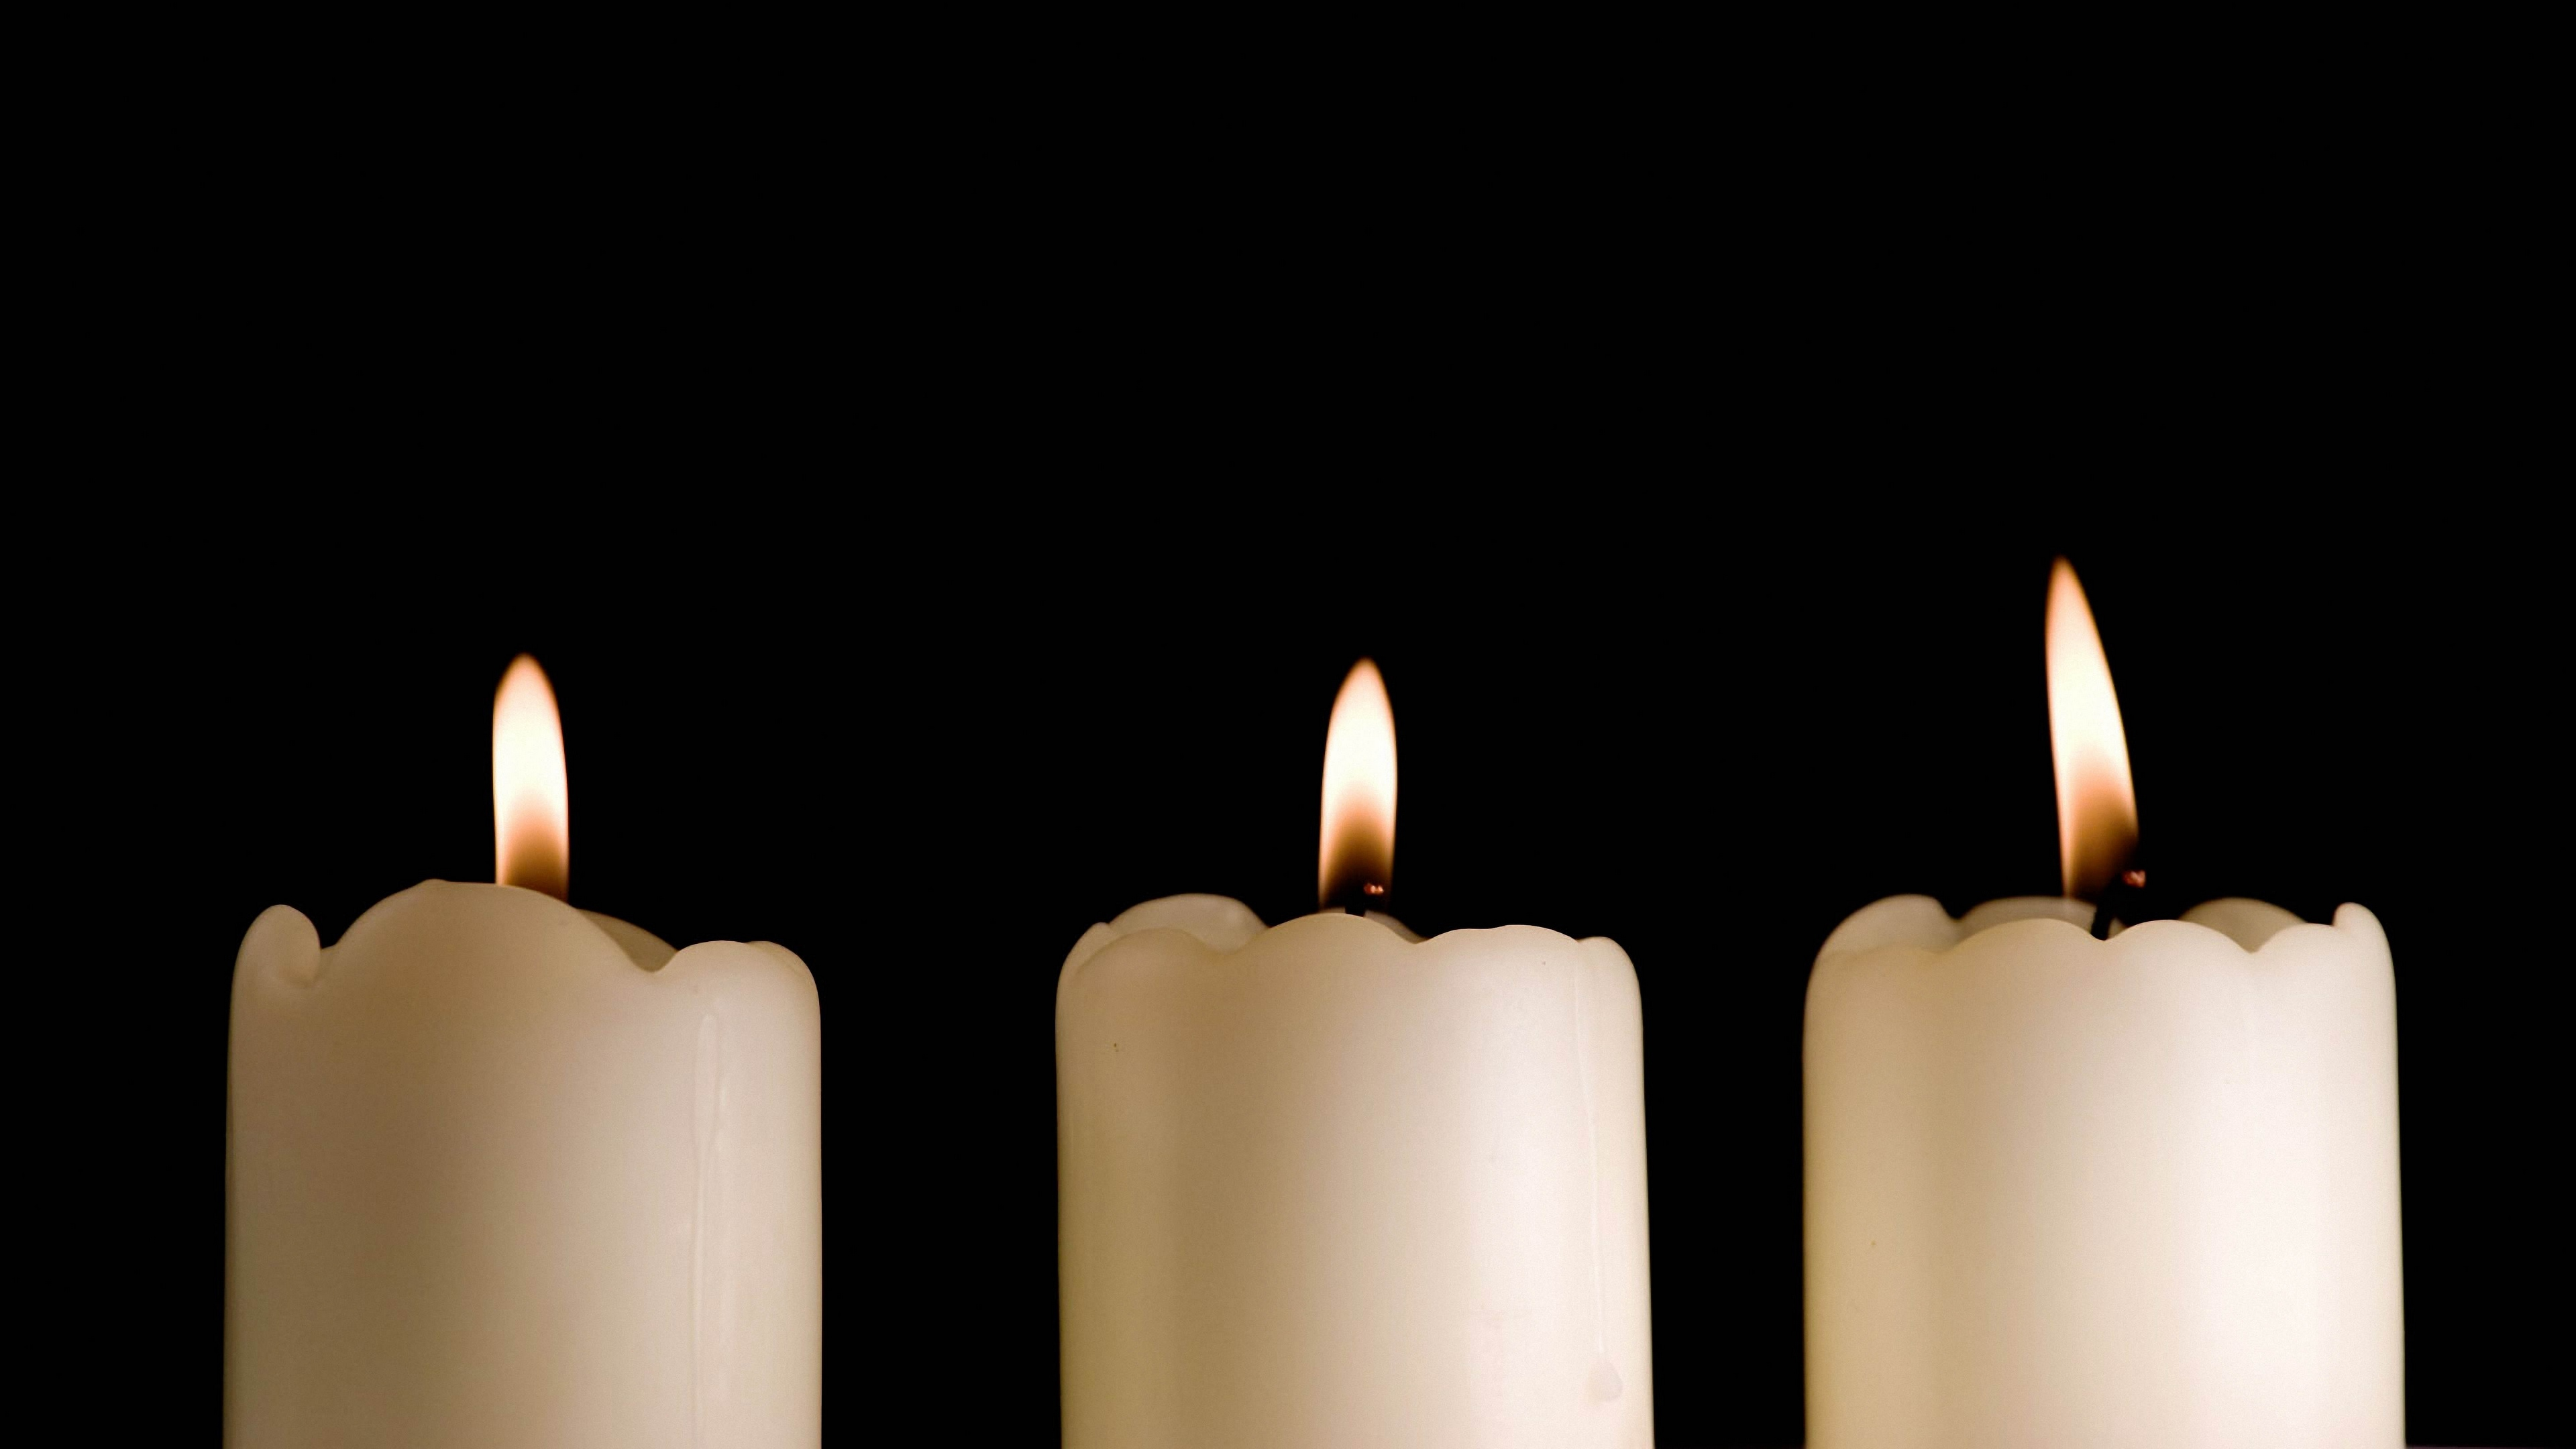 candles lights black background three 4k 1540574930 - candles, lights, black background, three 4k - Lights, Candles, black background